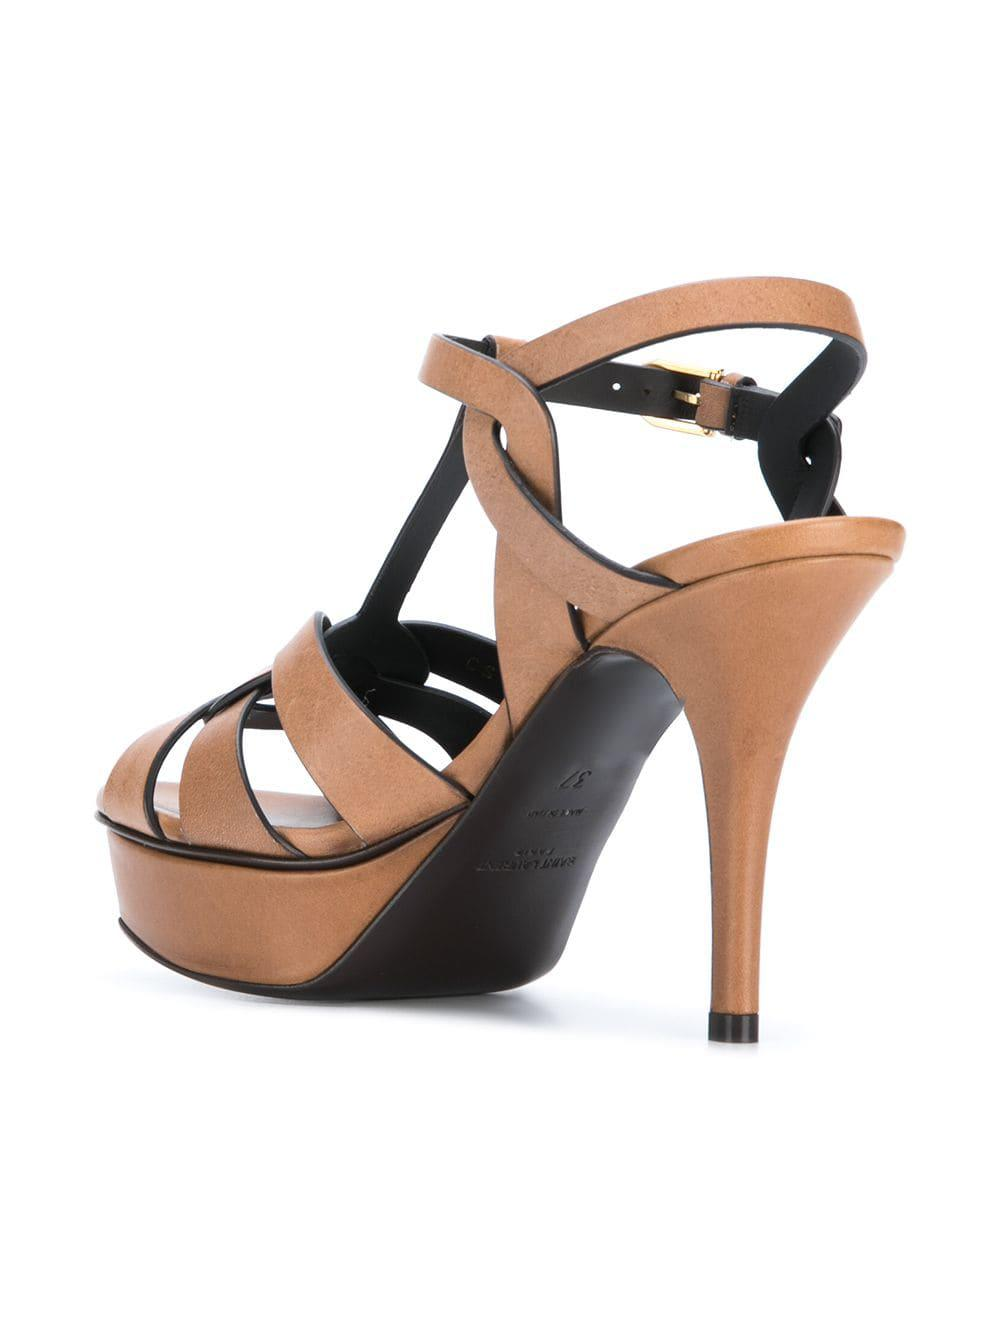 0deb7a7078f Saint Laurent Woven Ankle Strap Sandals in Brown - Lyst